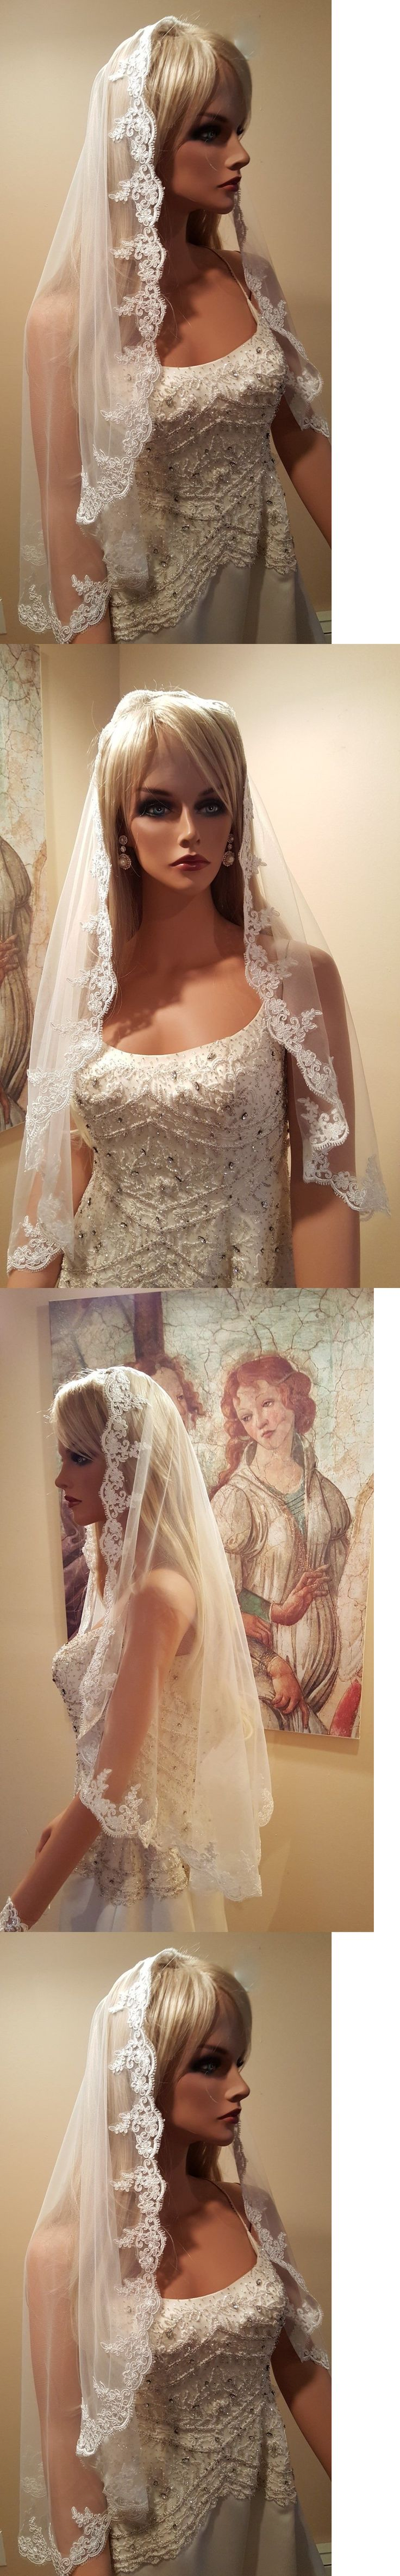 Bridal Accessories: Bridal Mantilla Hip Length Veil / Wedding Mantilla Veil / White , Light Ivory BUY IT NOW ONLY: $34.5